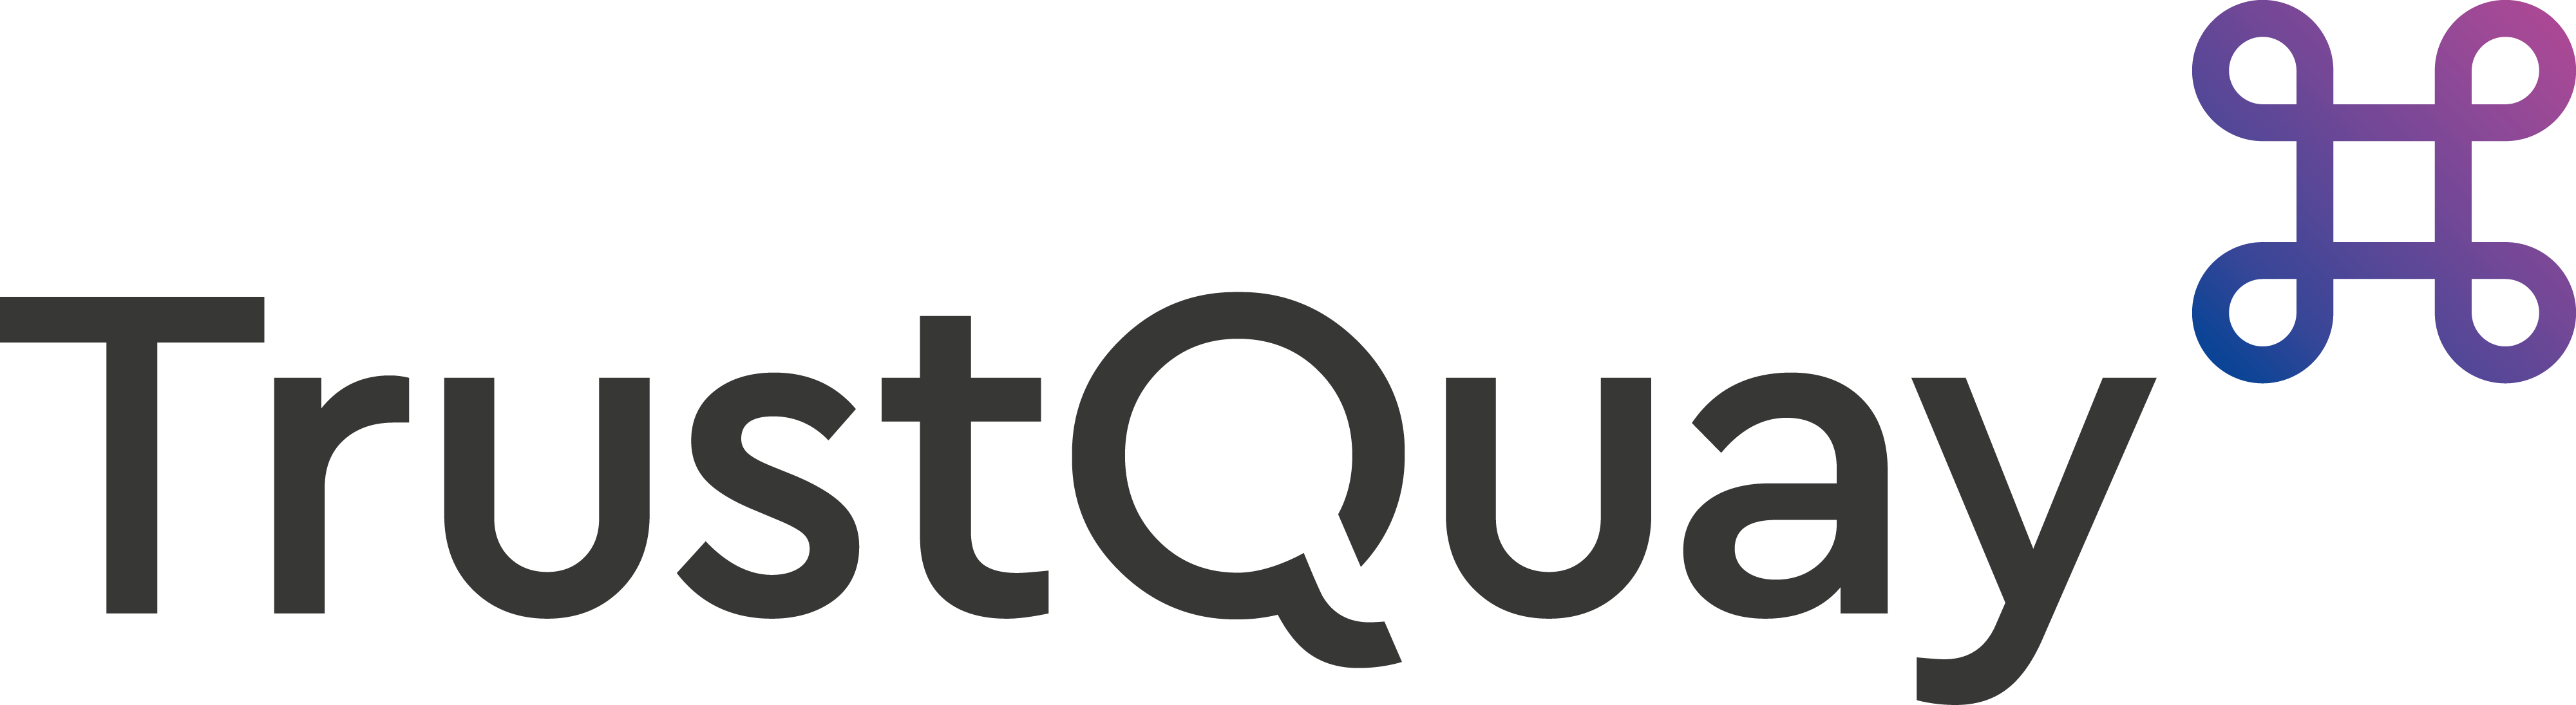 TrustQuay - Corporate Services, Fund Administration,Trust Administration